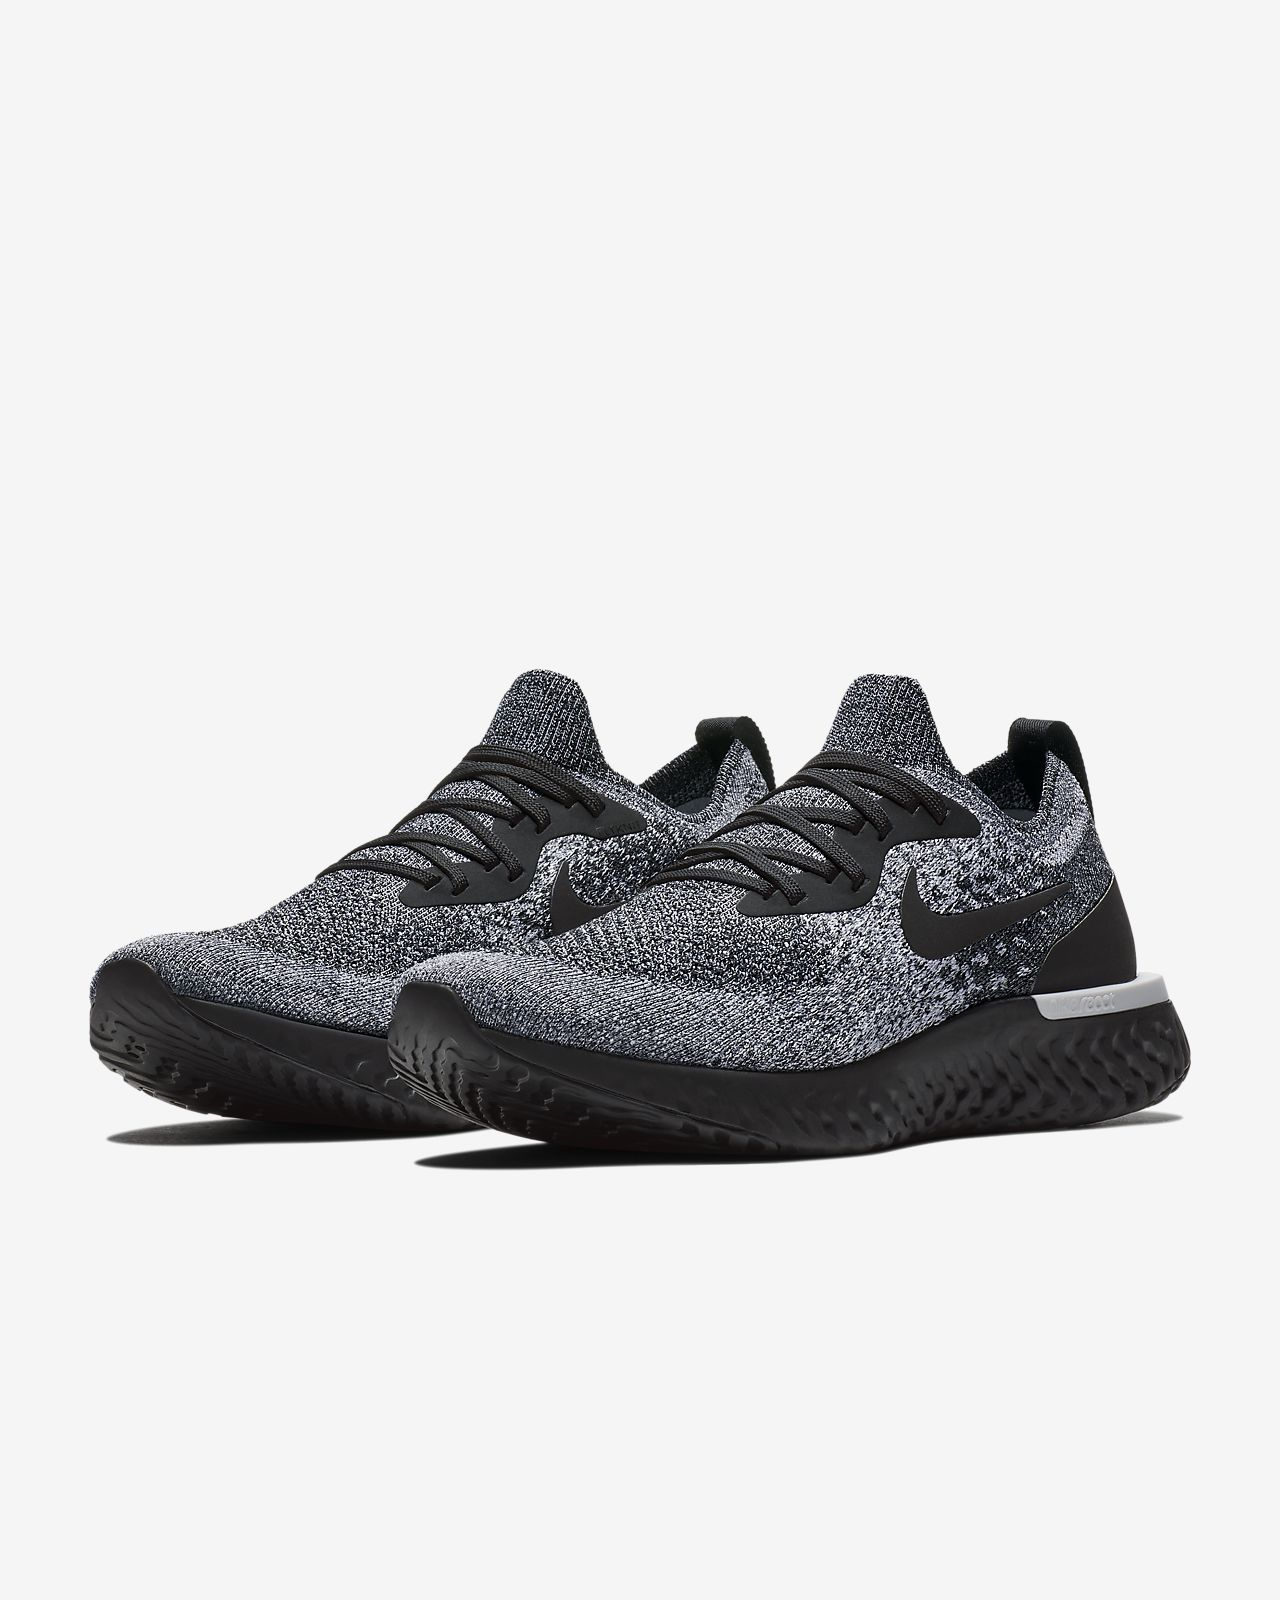 7376be9946fd Nike Epic React Flyknit Men s Running Shoe. Nike.com SG